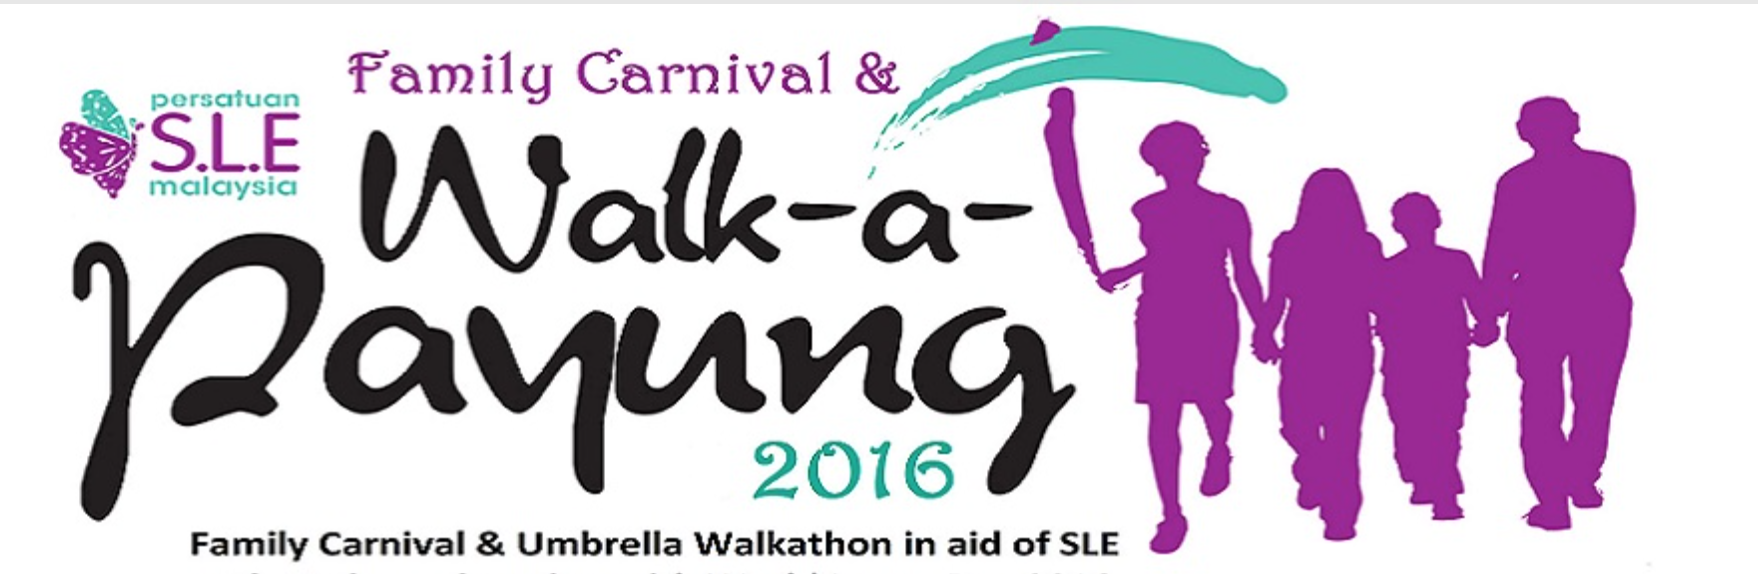 WALK-A-PAYUNG 2016 FAMILY CARNIVAL EDITION